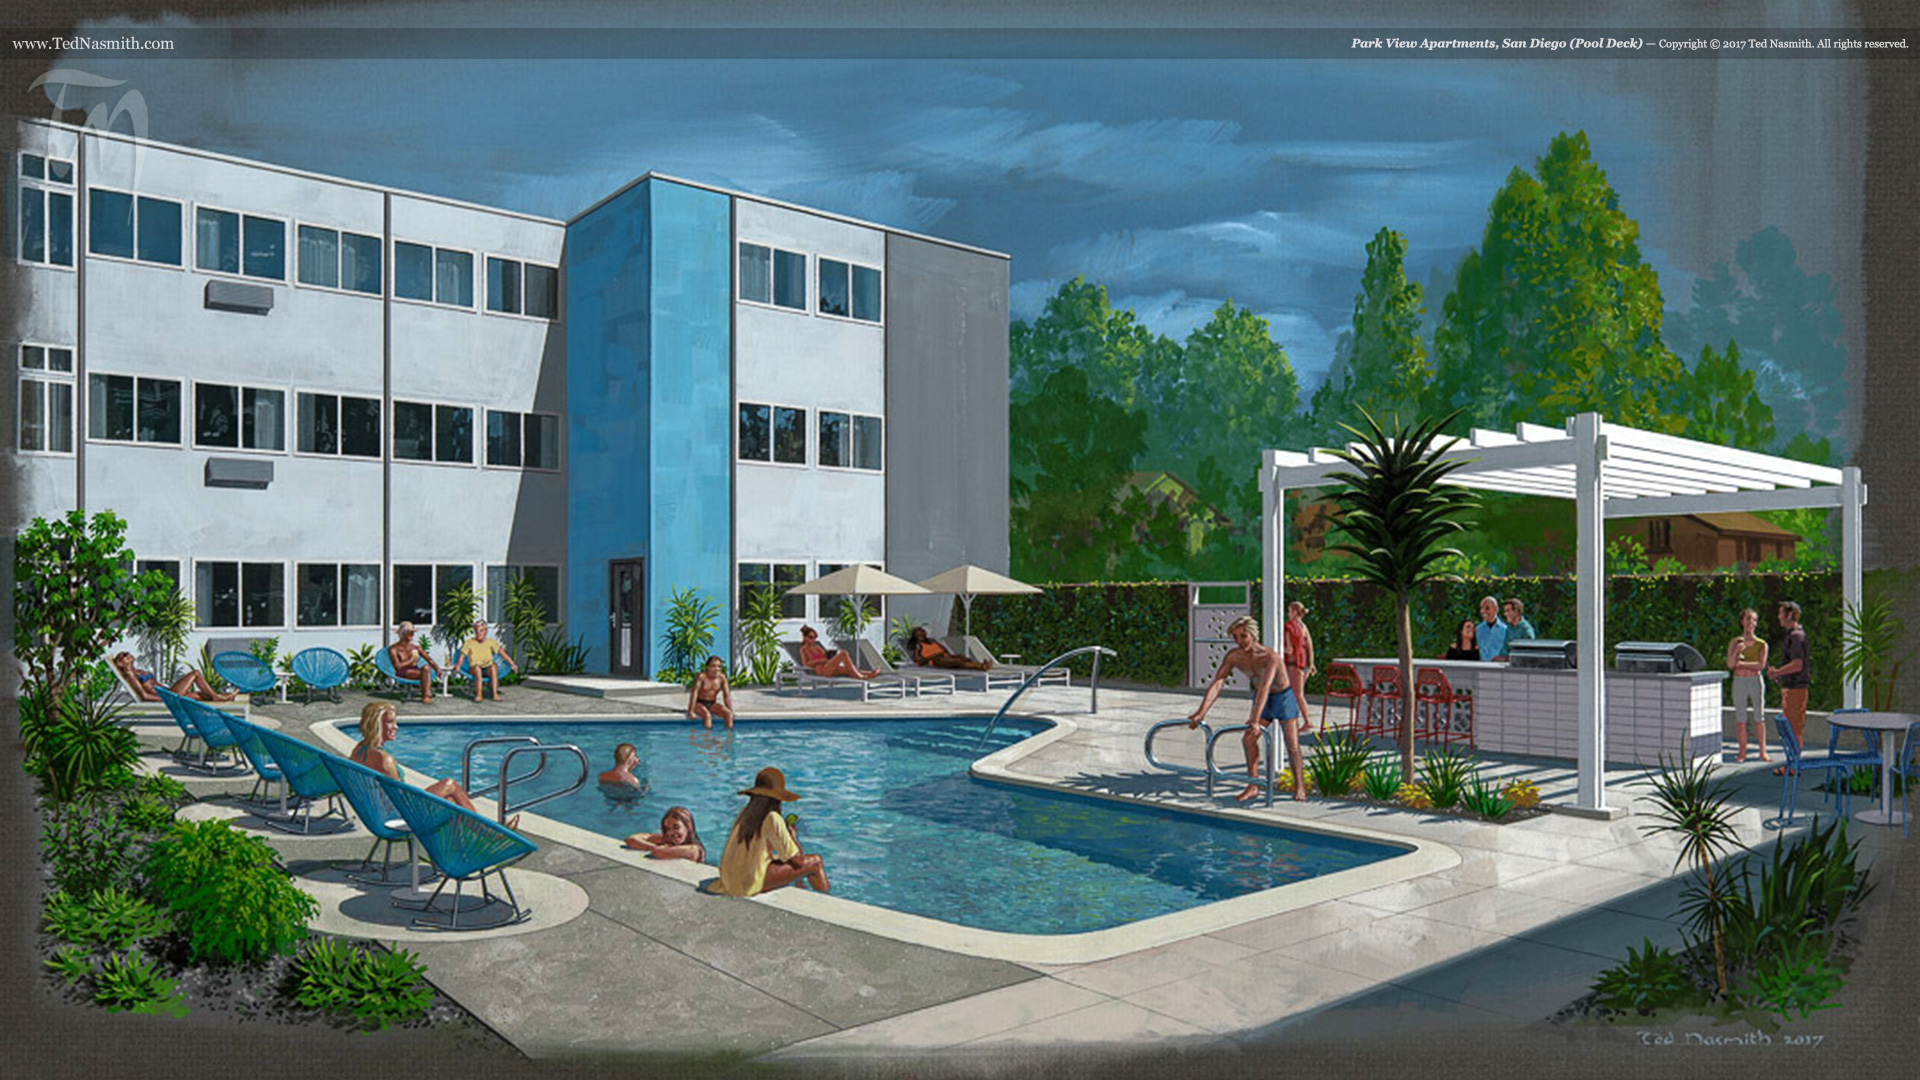 Park View Apartments (Pool Deck) – Ted Nasmith